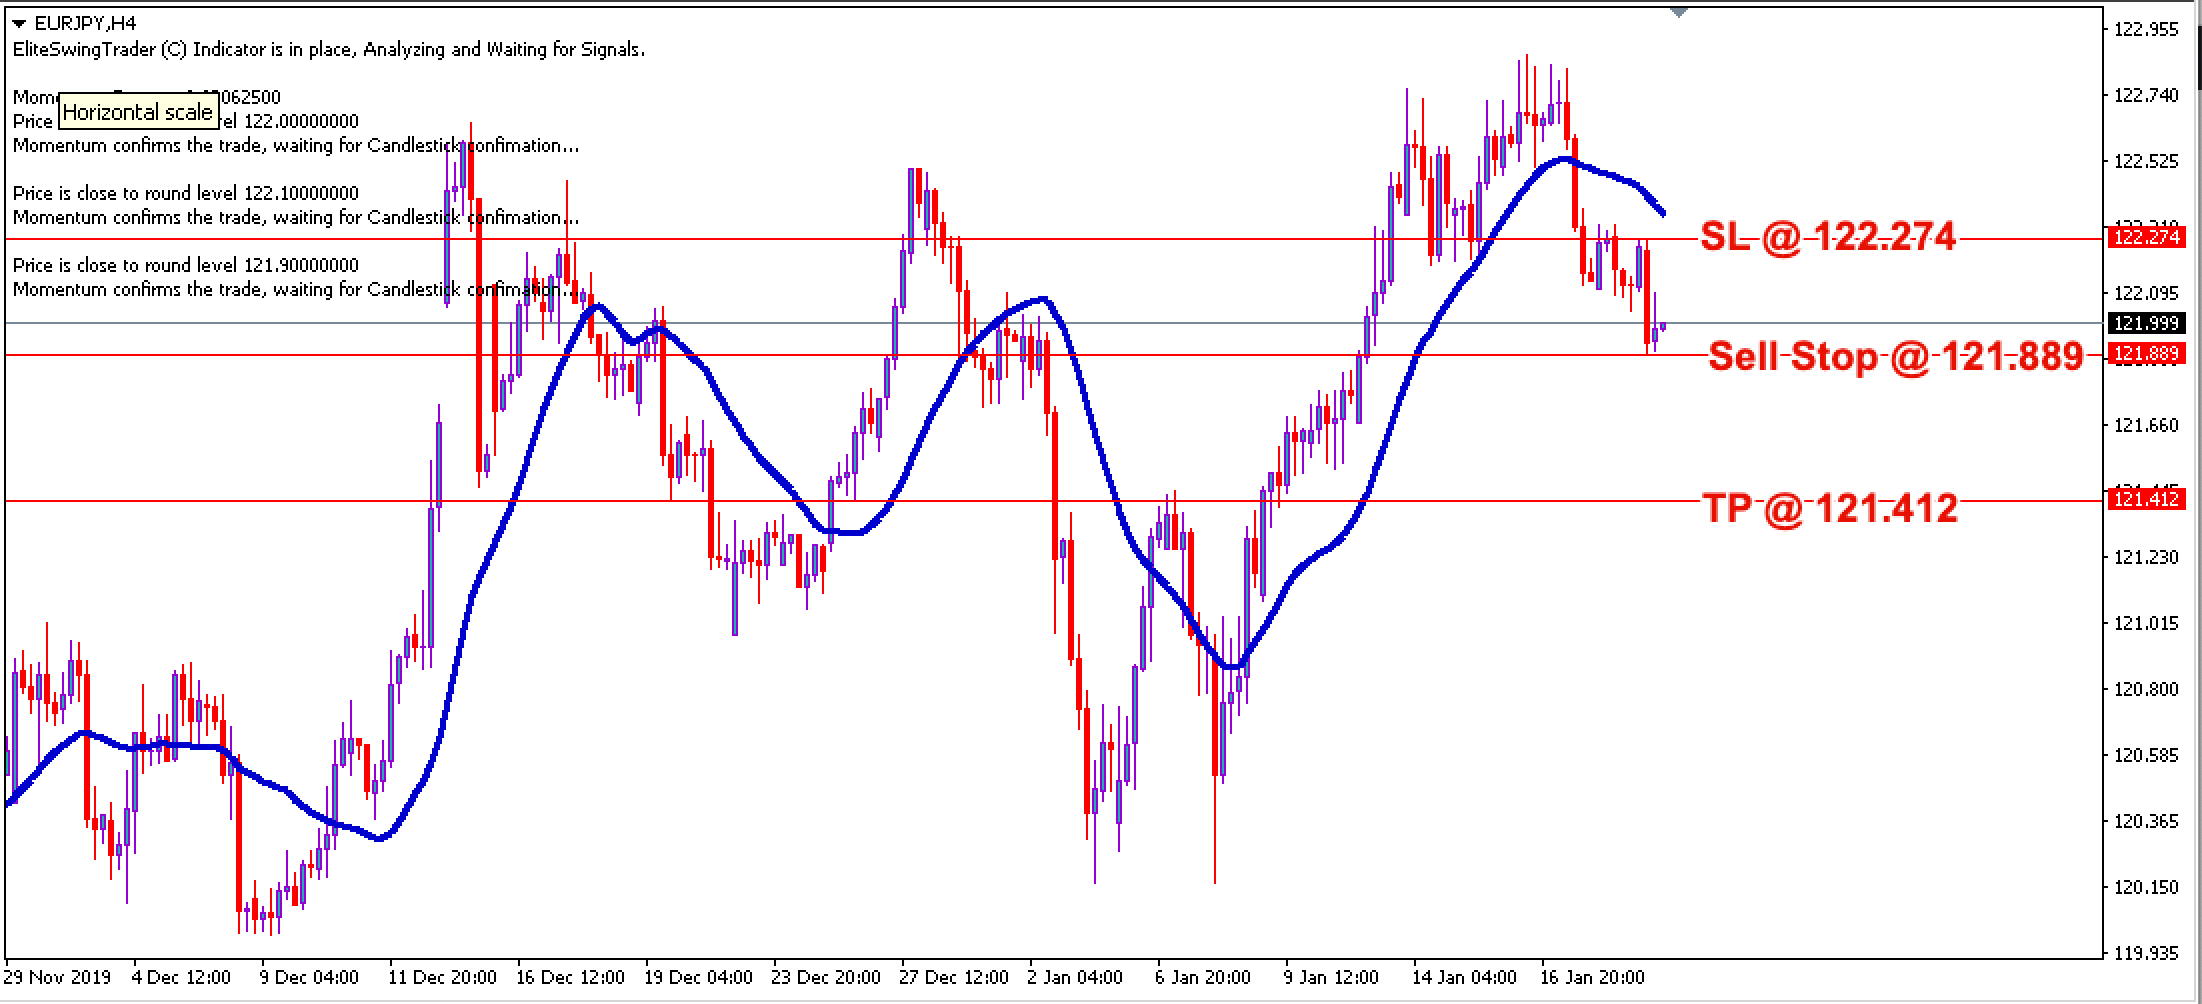 EUR/JPY Daily Price Forecast – 21st Jan 2020